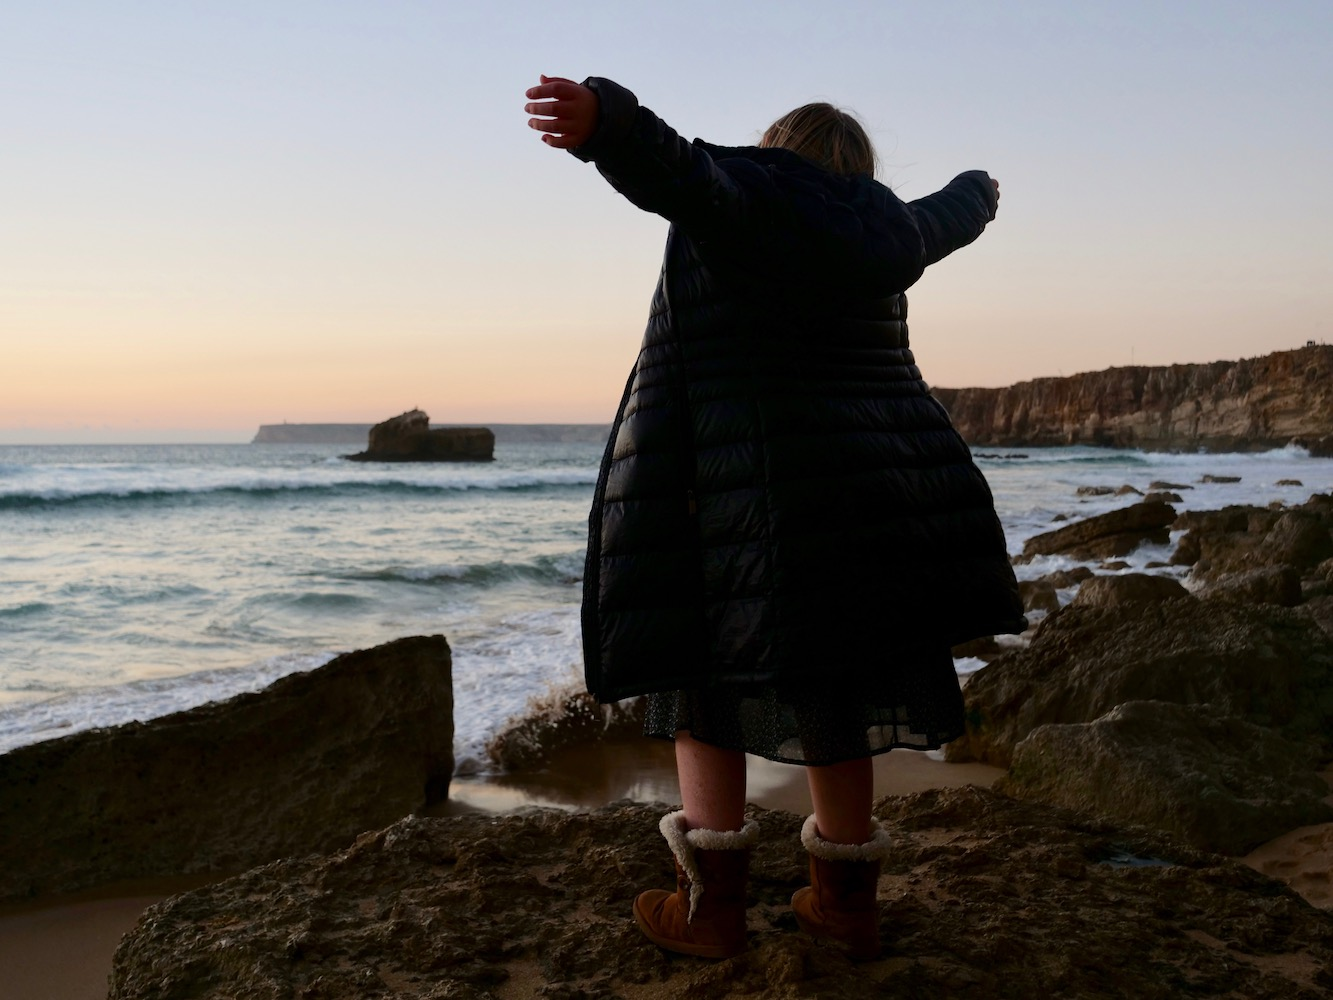 """Lily in Sagres, the southwestern coast of Portugal. Before Columbus, this was the edge of the """"known world"""" as far as Europeans were concerned. A perfect spot for reflecting back and looking forward."""